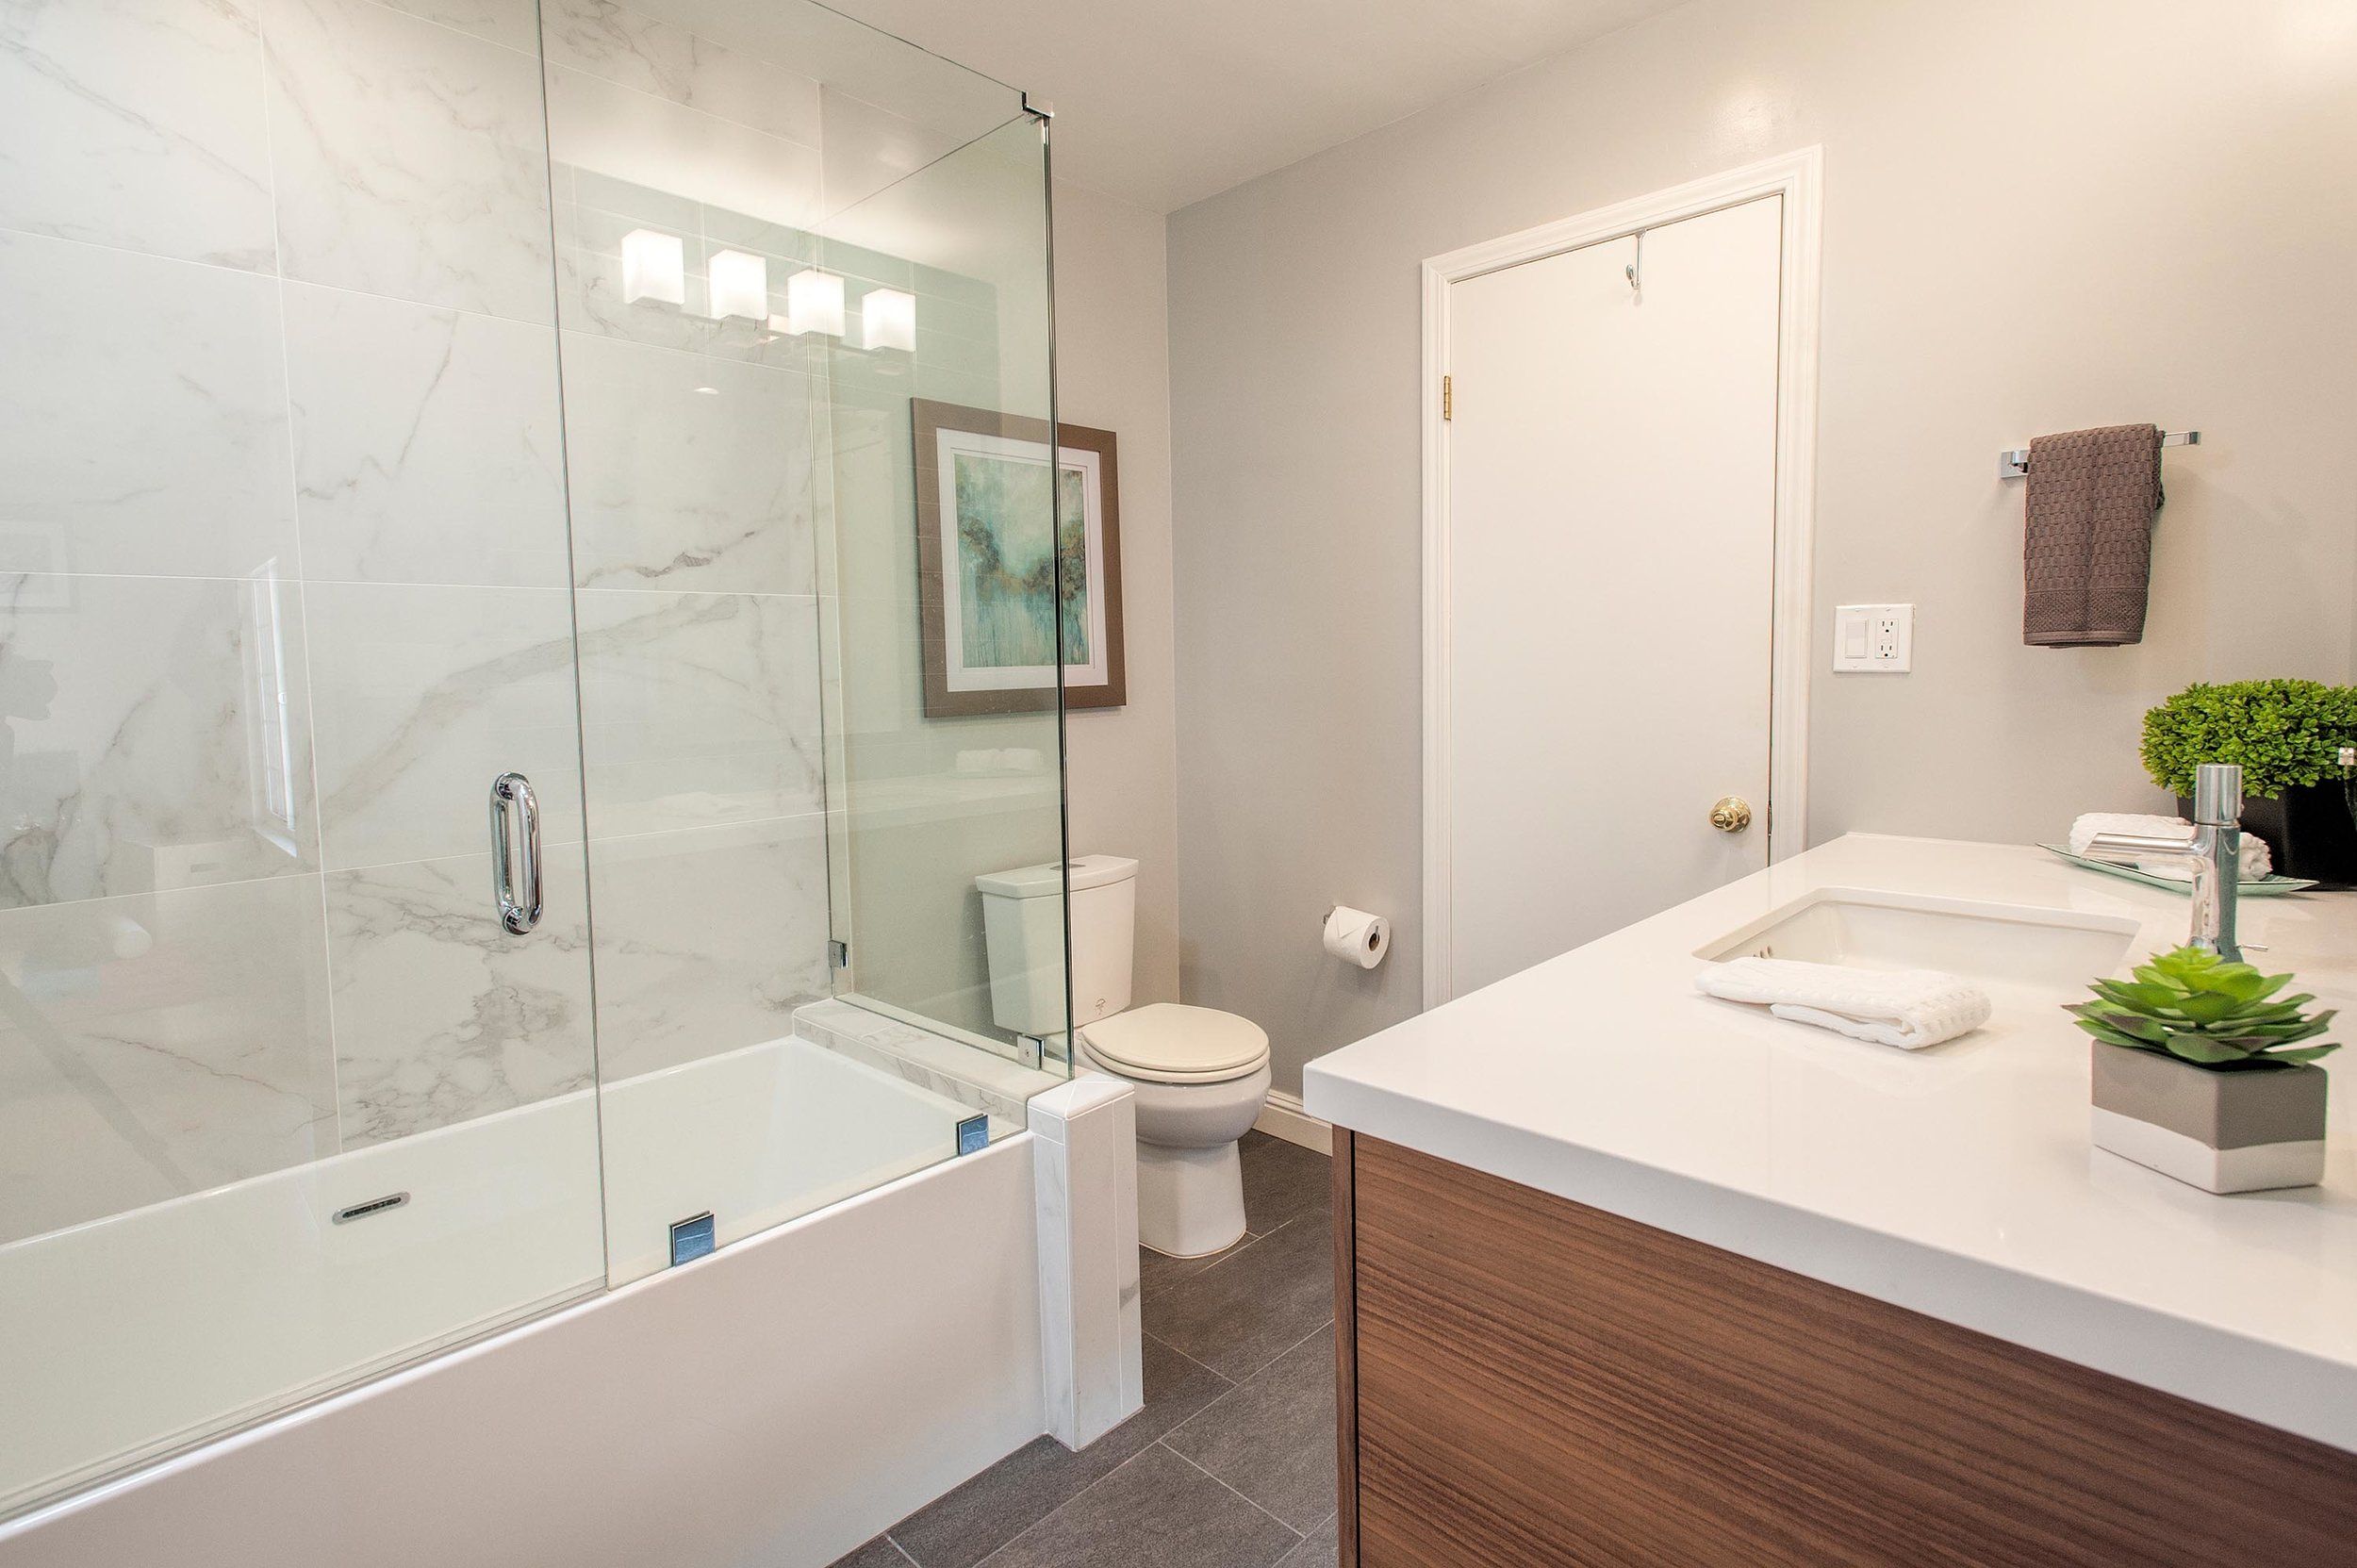 Elegant bathroom with therapeutic tub and a faucet